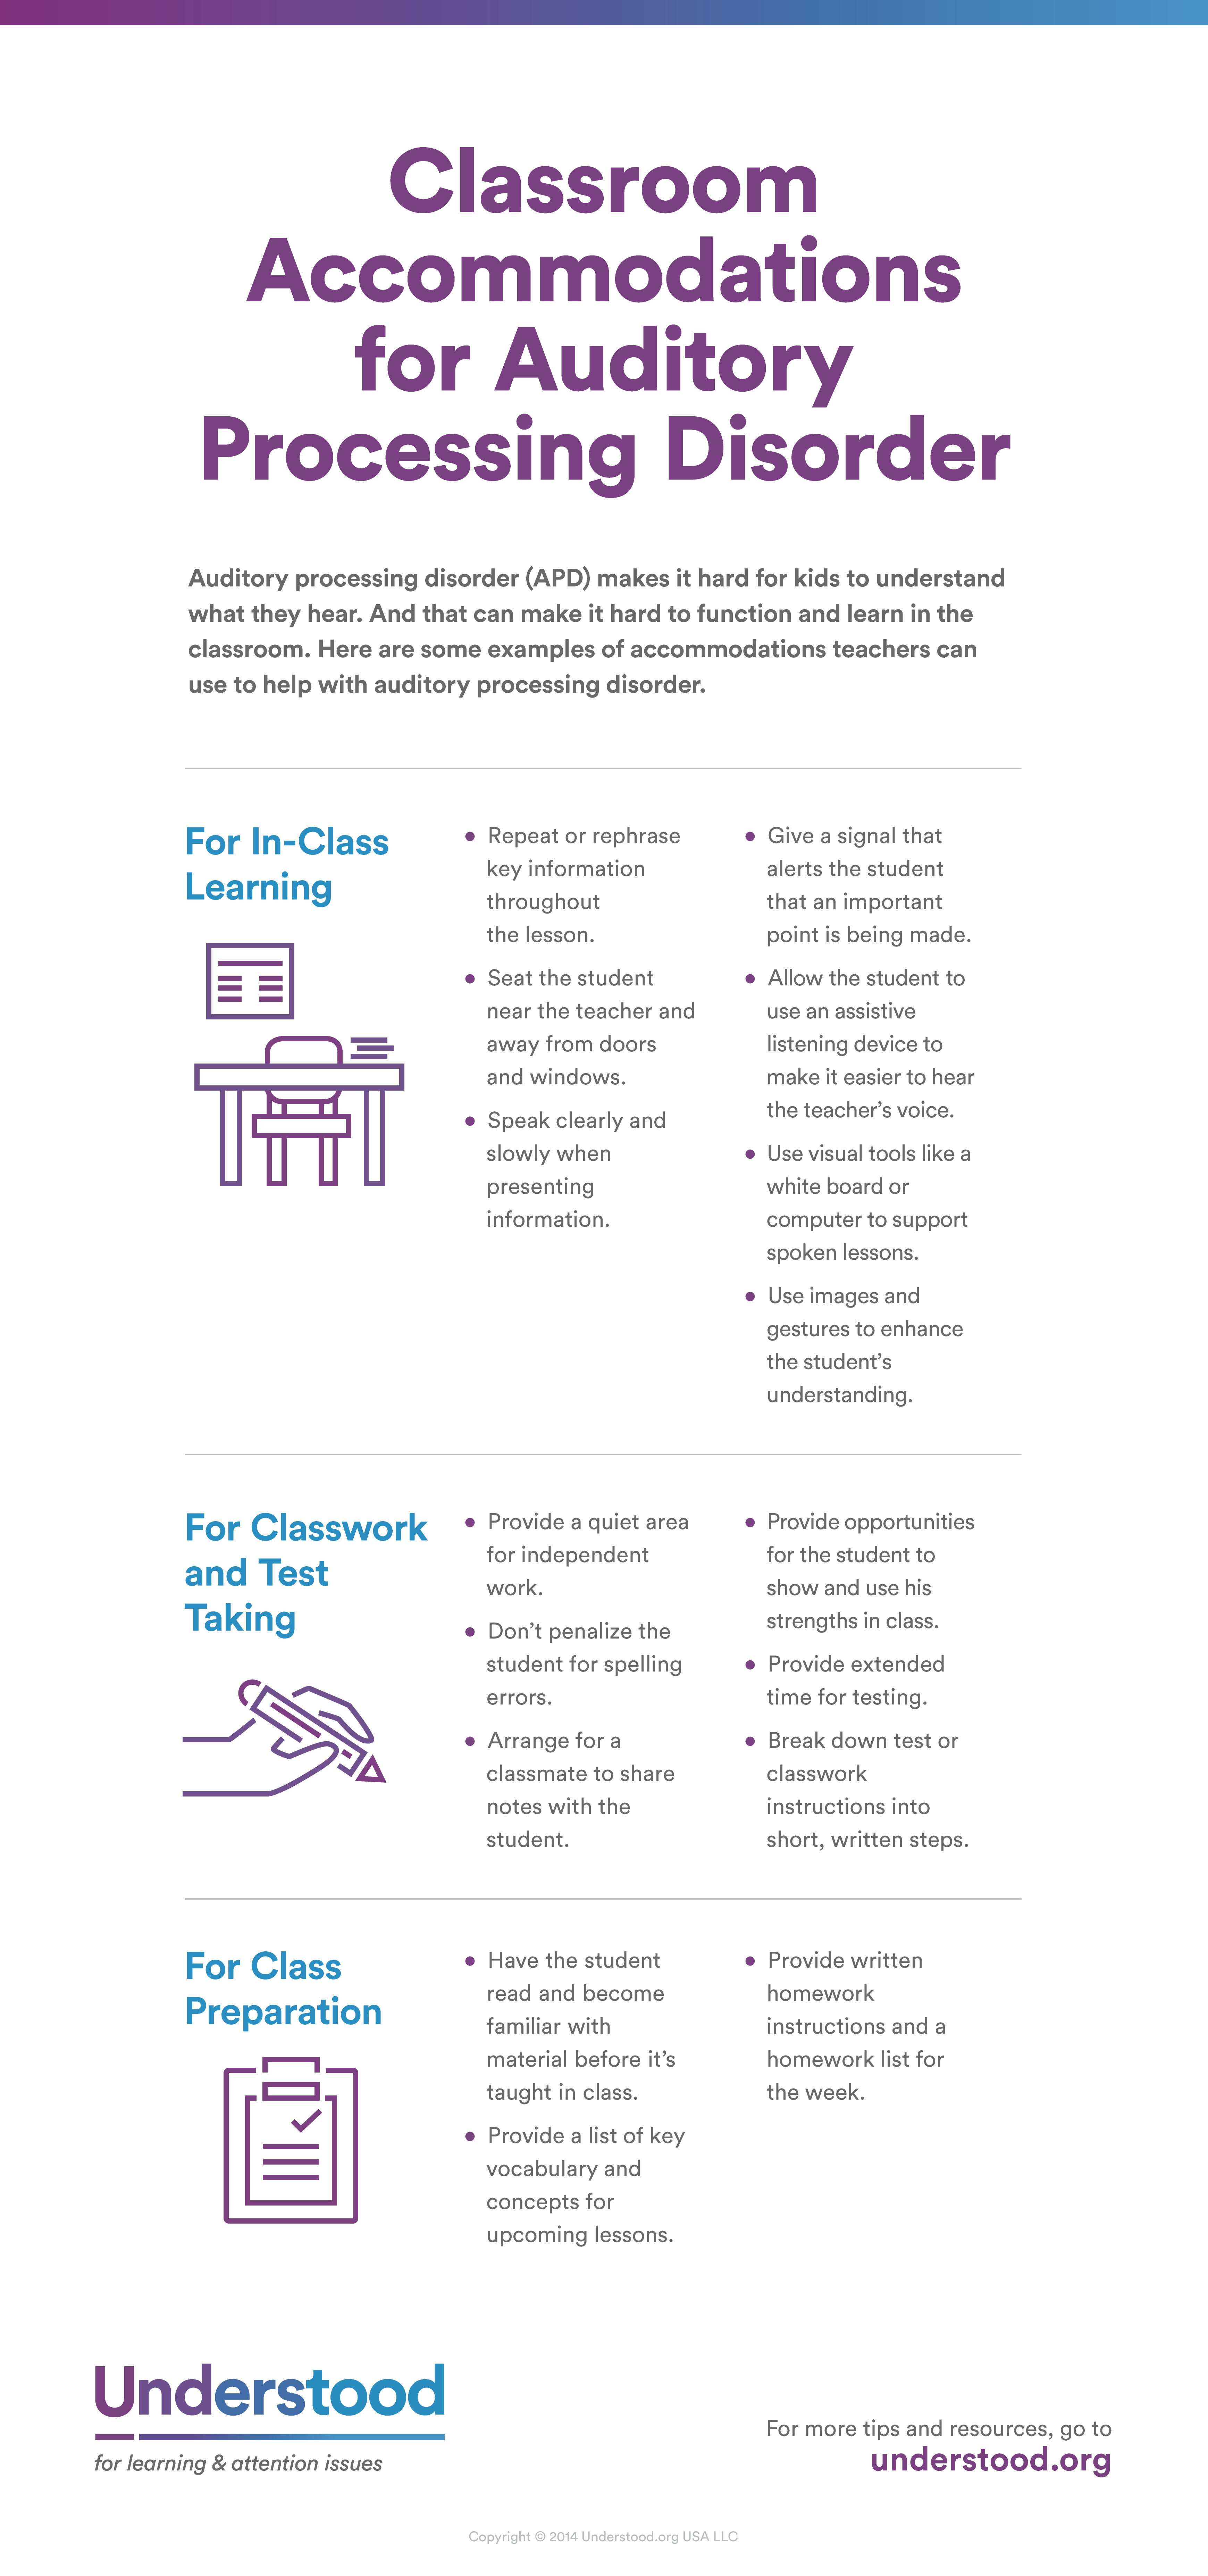 At A Glance Classroom Accommodations For Auditory